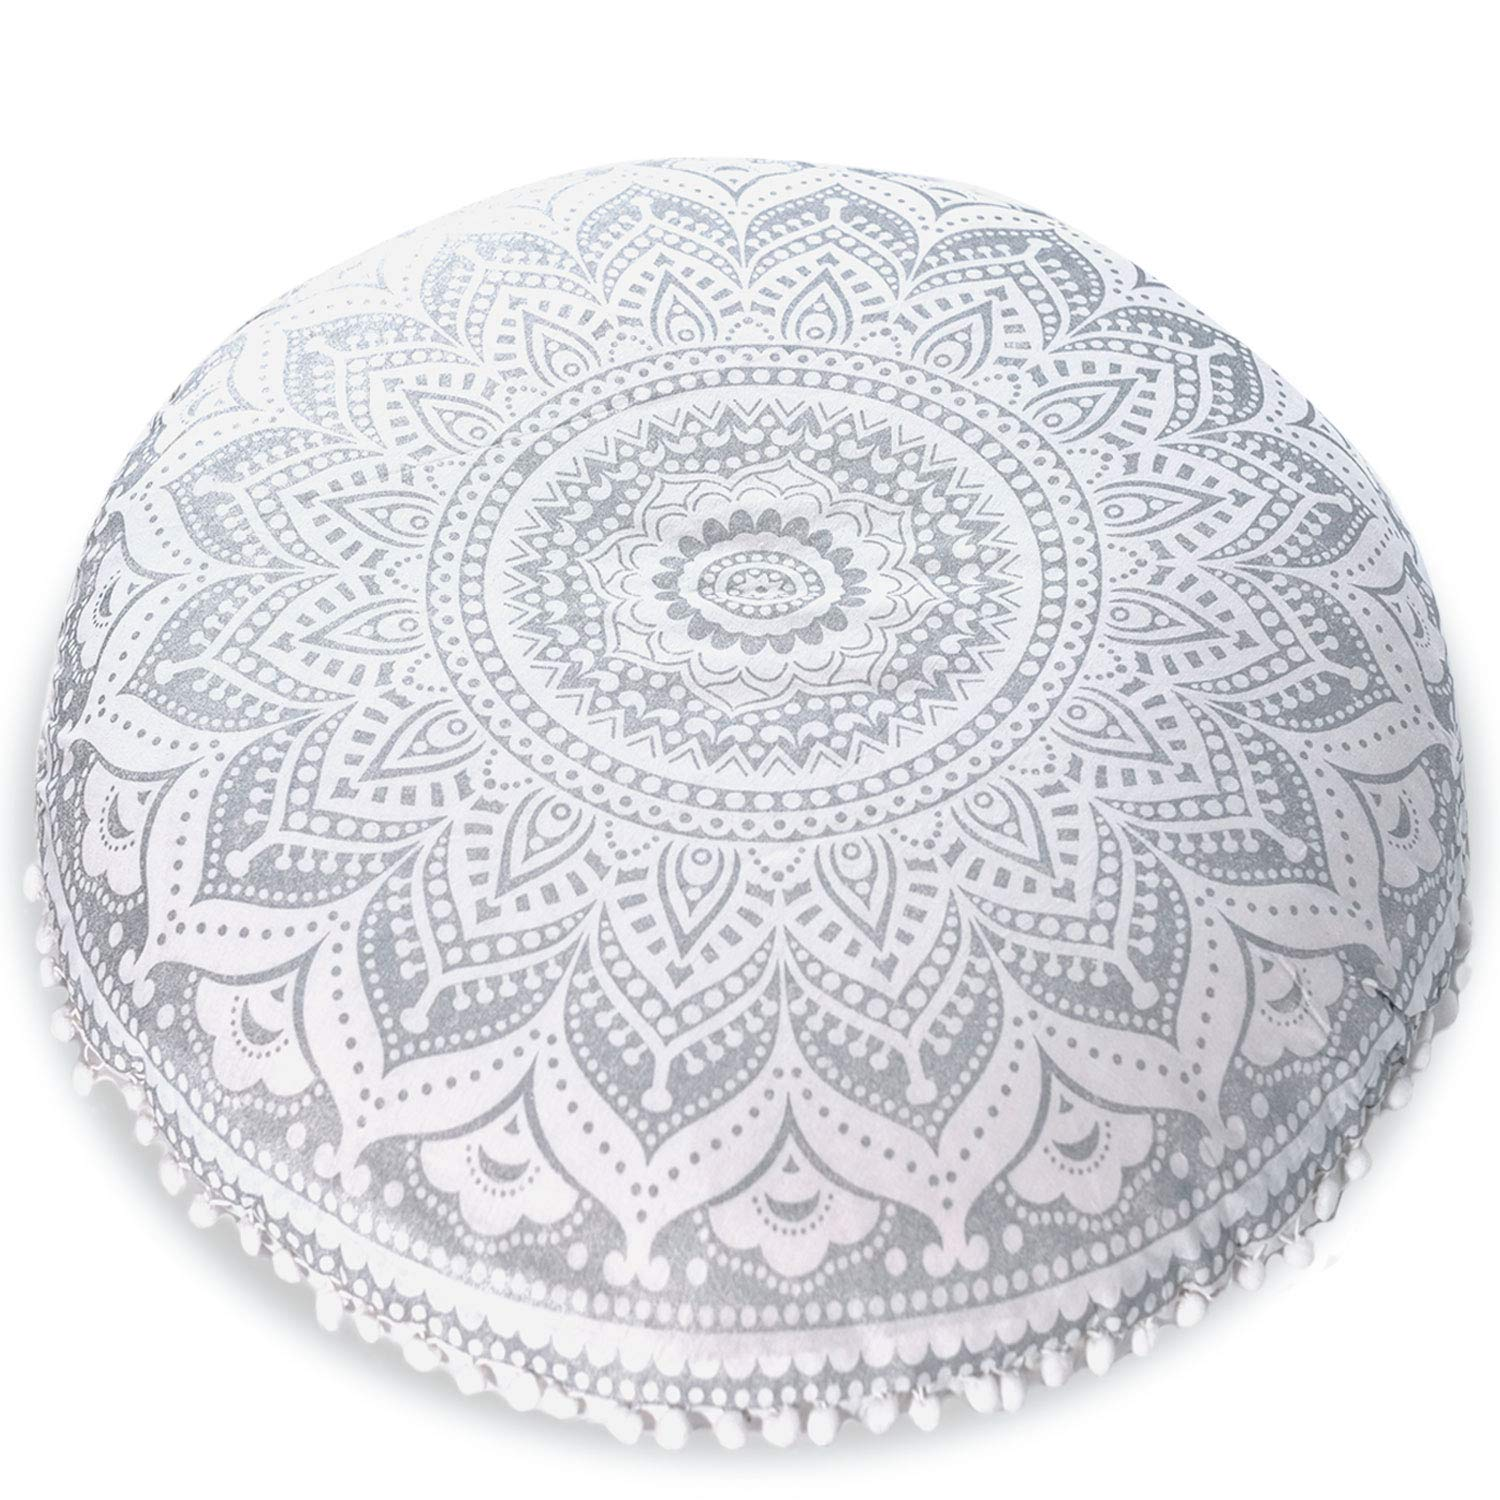 "Mandala Life ART Bohemian Yoga Decor Floor Cushion Cover - 30"" Round Meditation Pillow Case - Pouf Cover - Metallic Silver - Hand Printed - Organic Cotton PoufSilver"